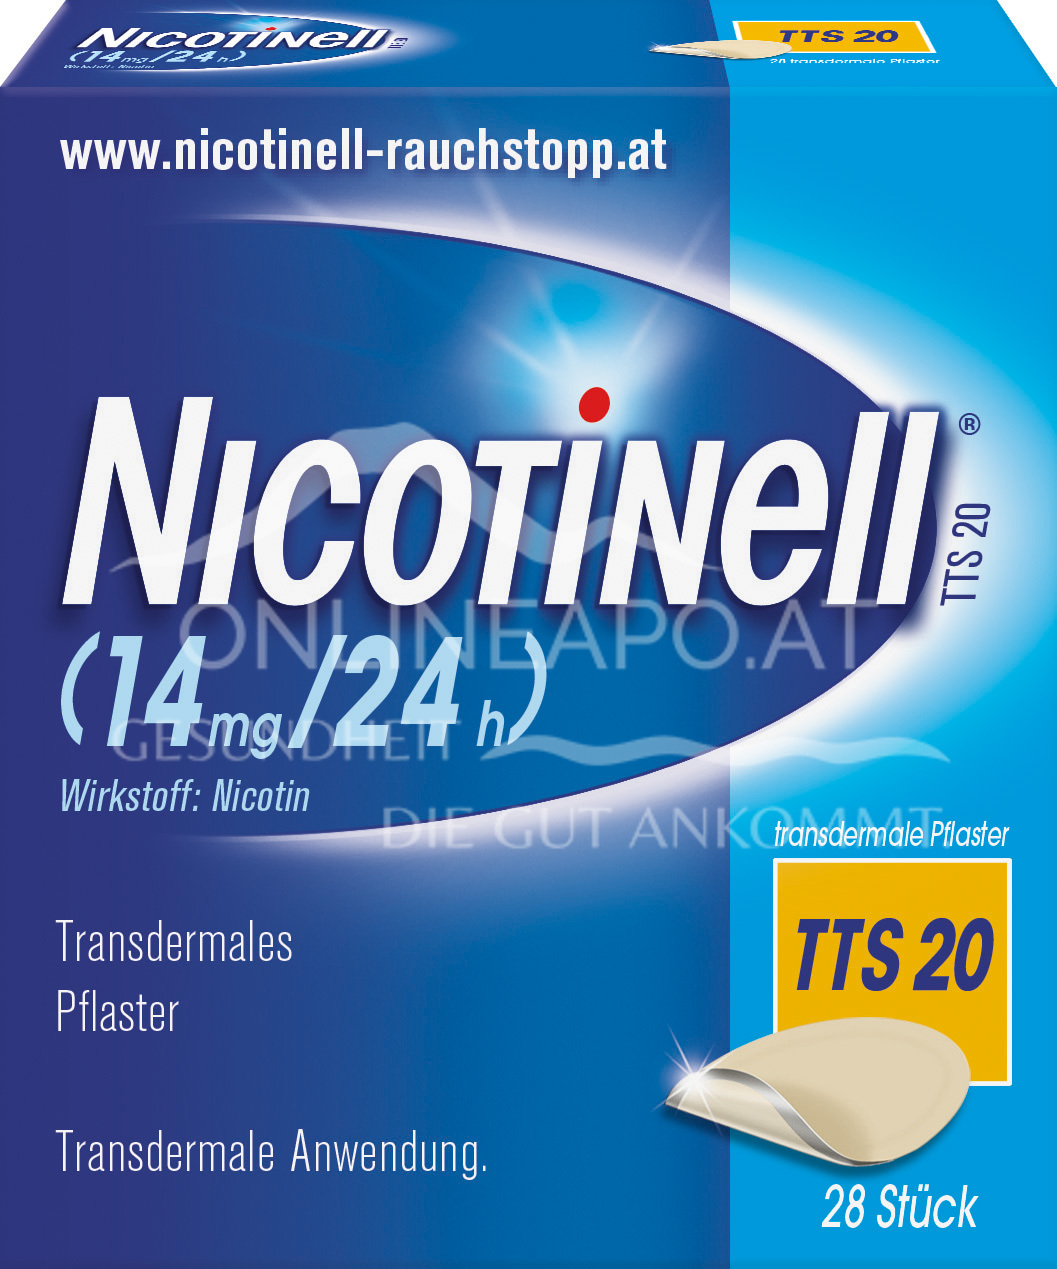 Nicotinell® TTS 20 (14 mg/24 h) transdermale Pflaster